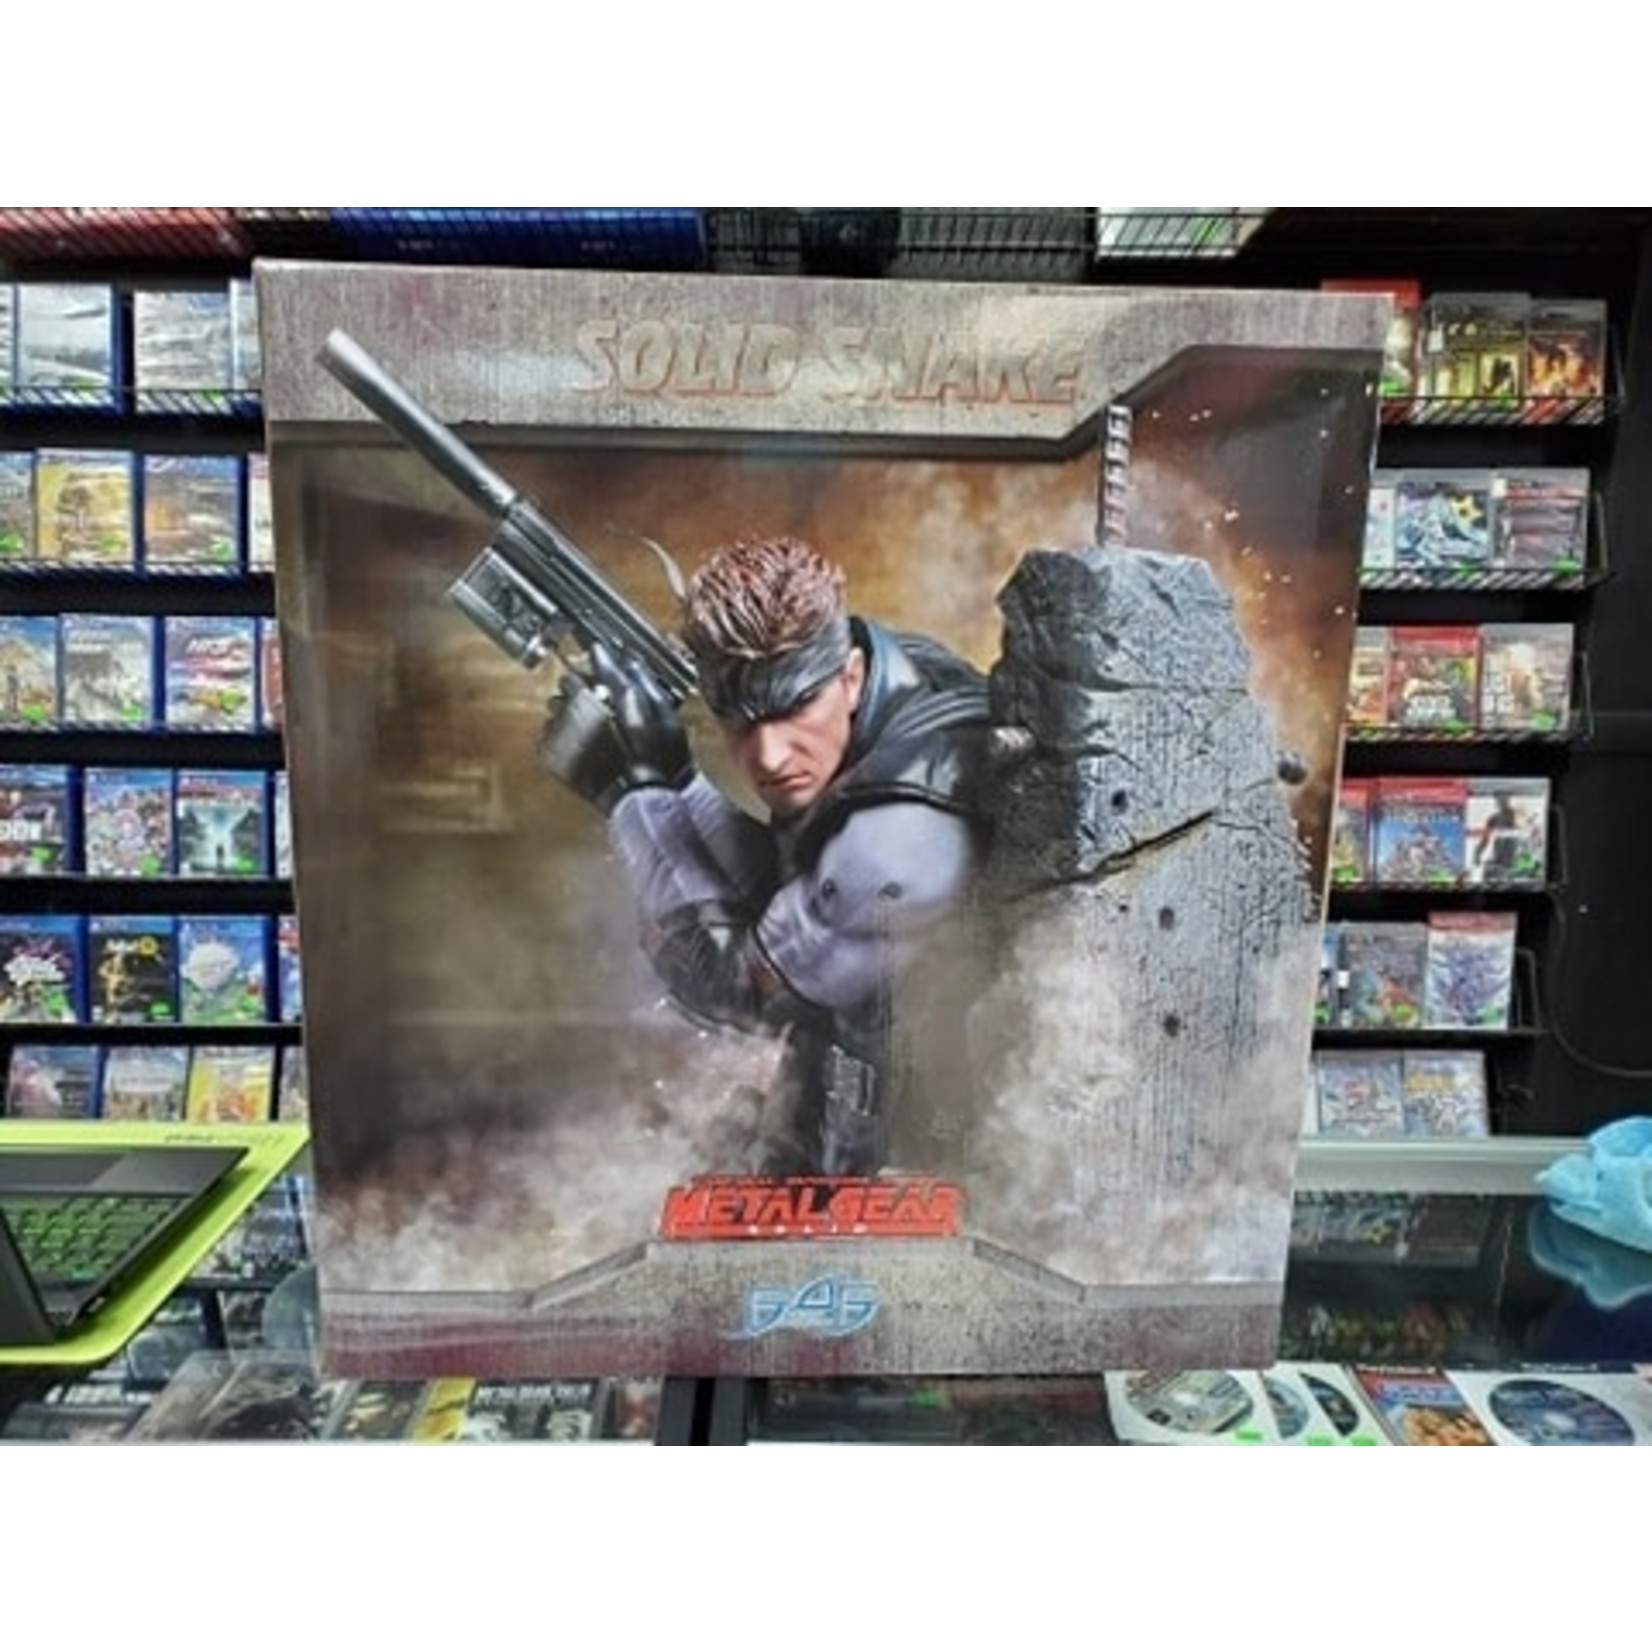 STATUE-F4F Metal Gear Solid - Solid Snake (167/1000)